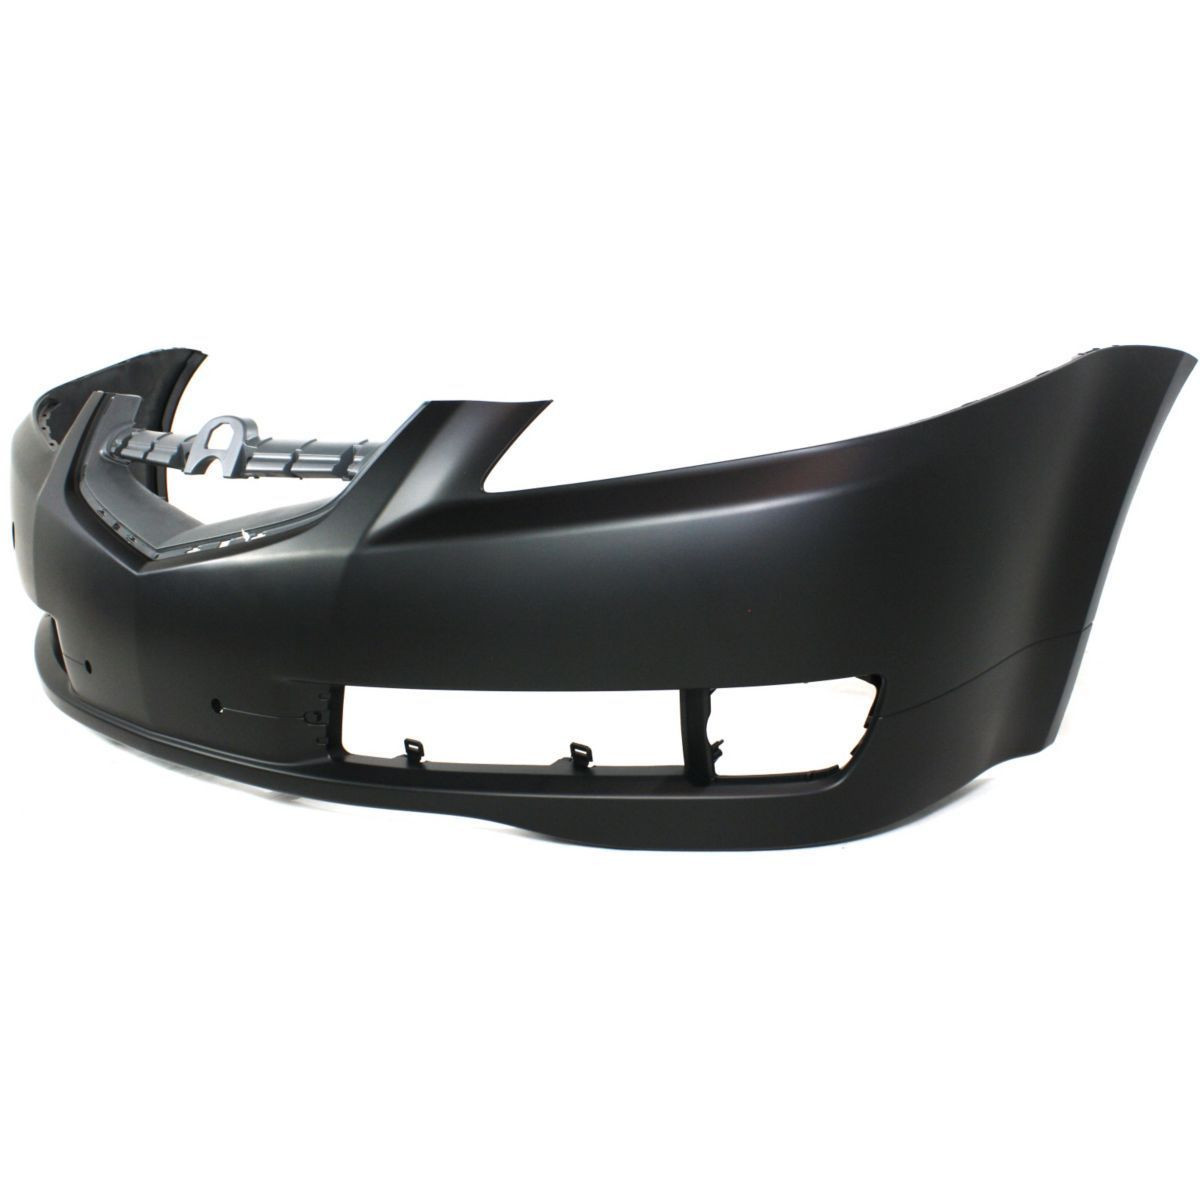 Genuine OEM Acura TL 2007-2008 Base Front Bumper